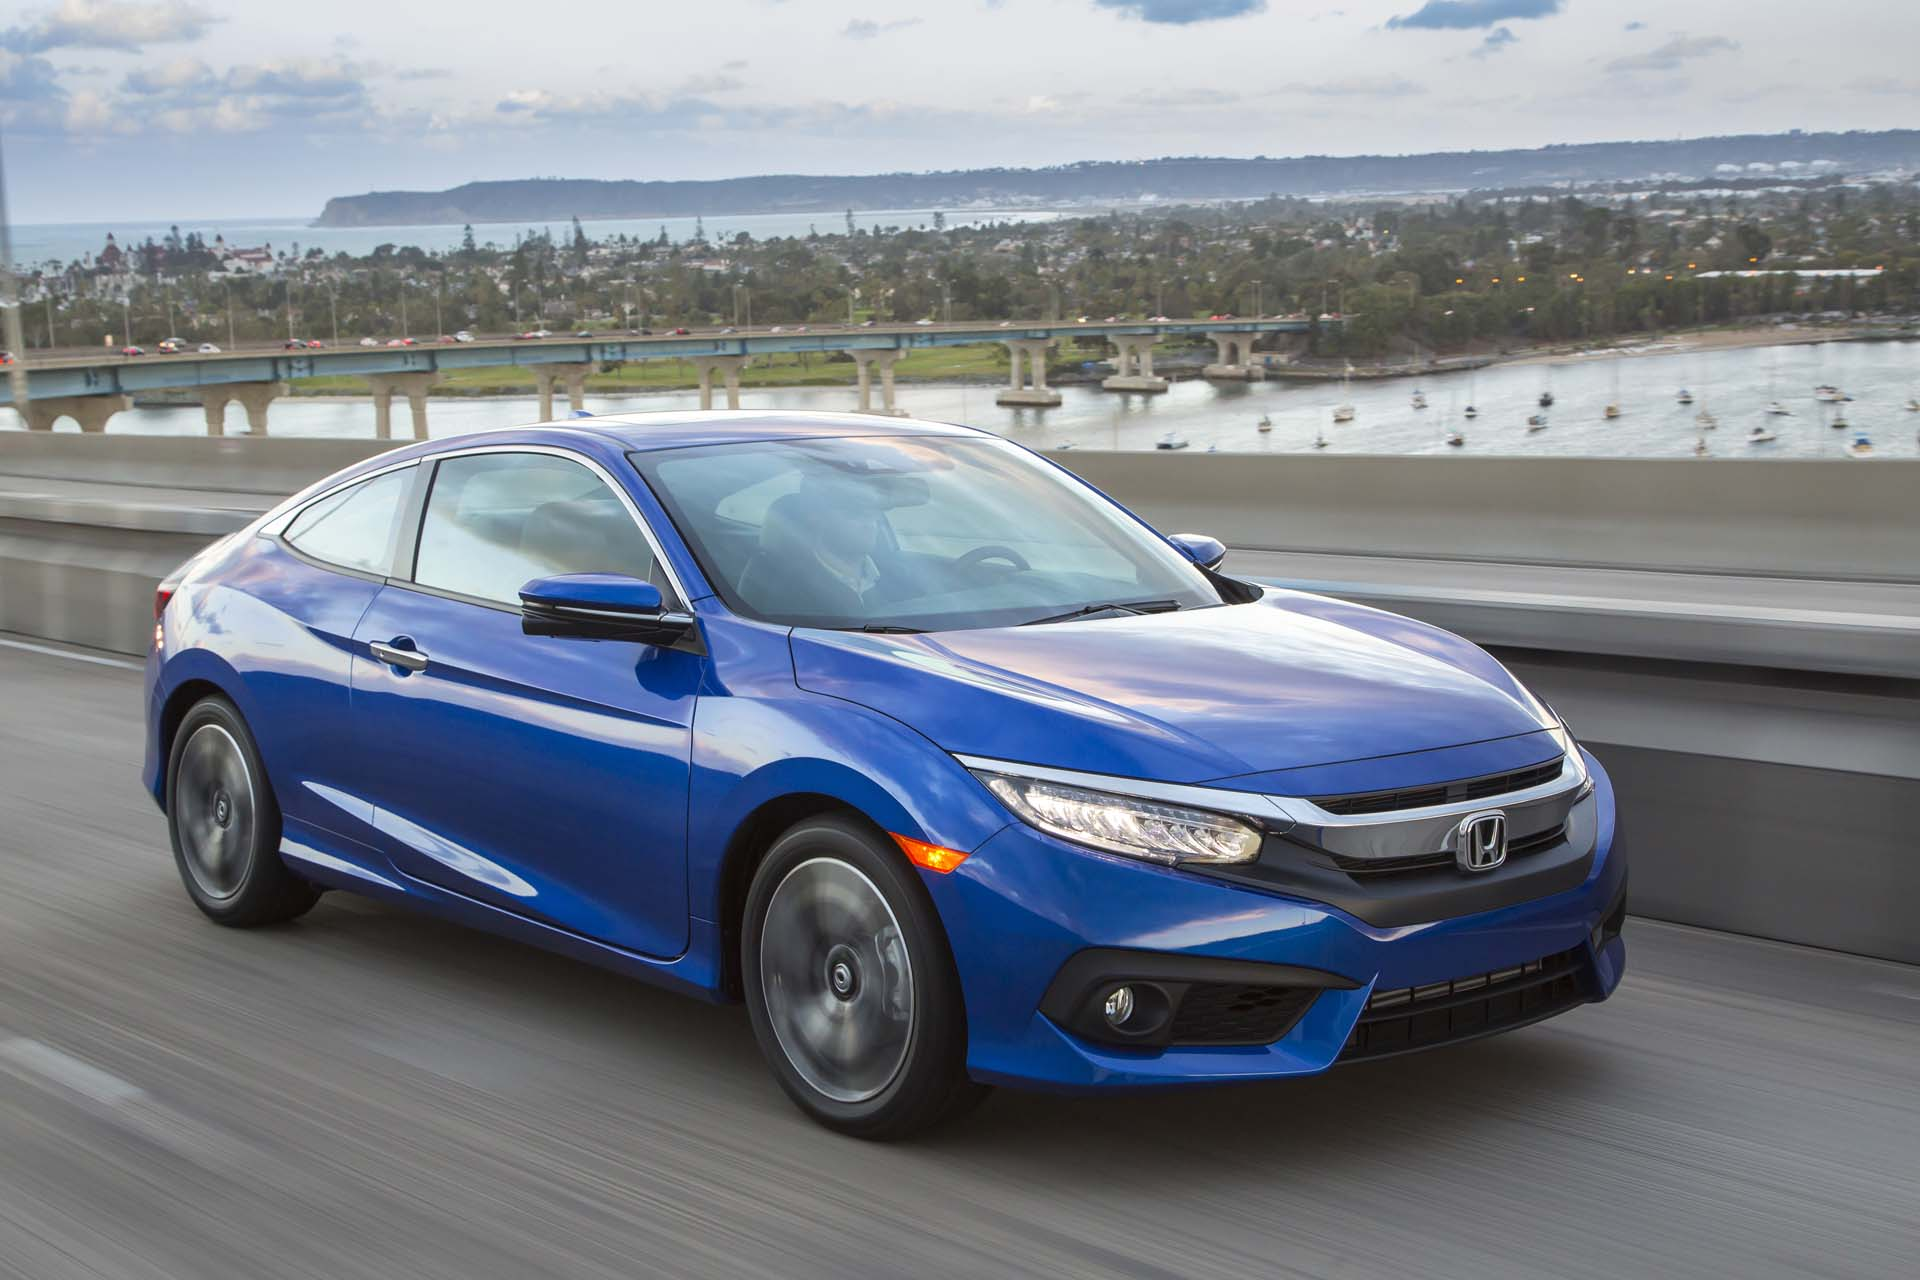 2017 Honda Civic Vs Toyota Corolla Compare Cars